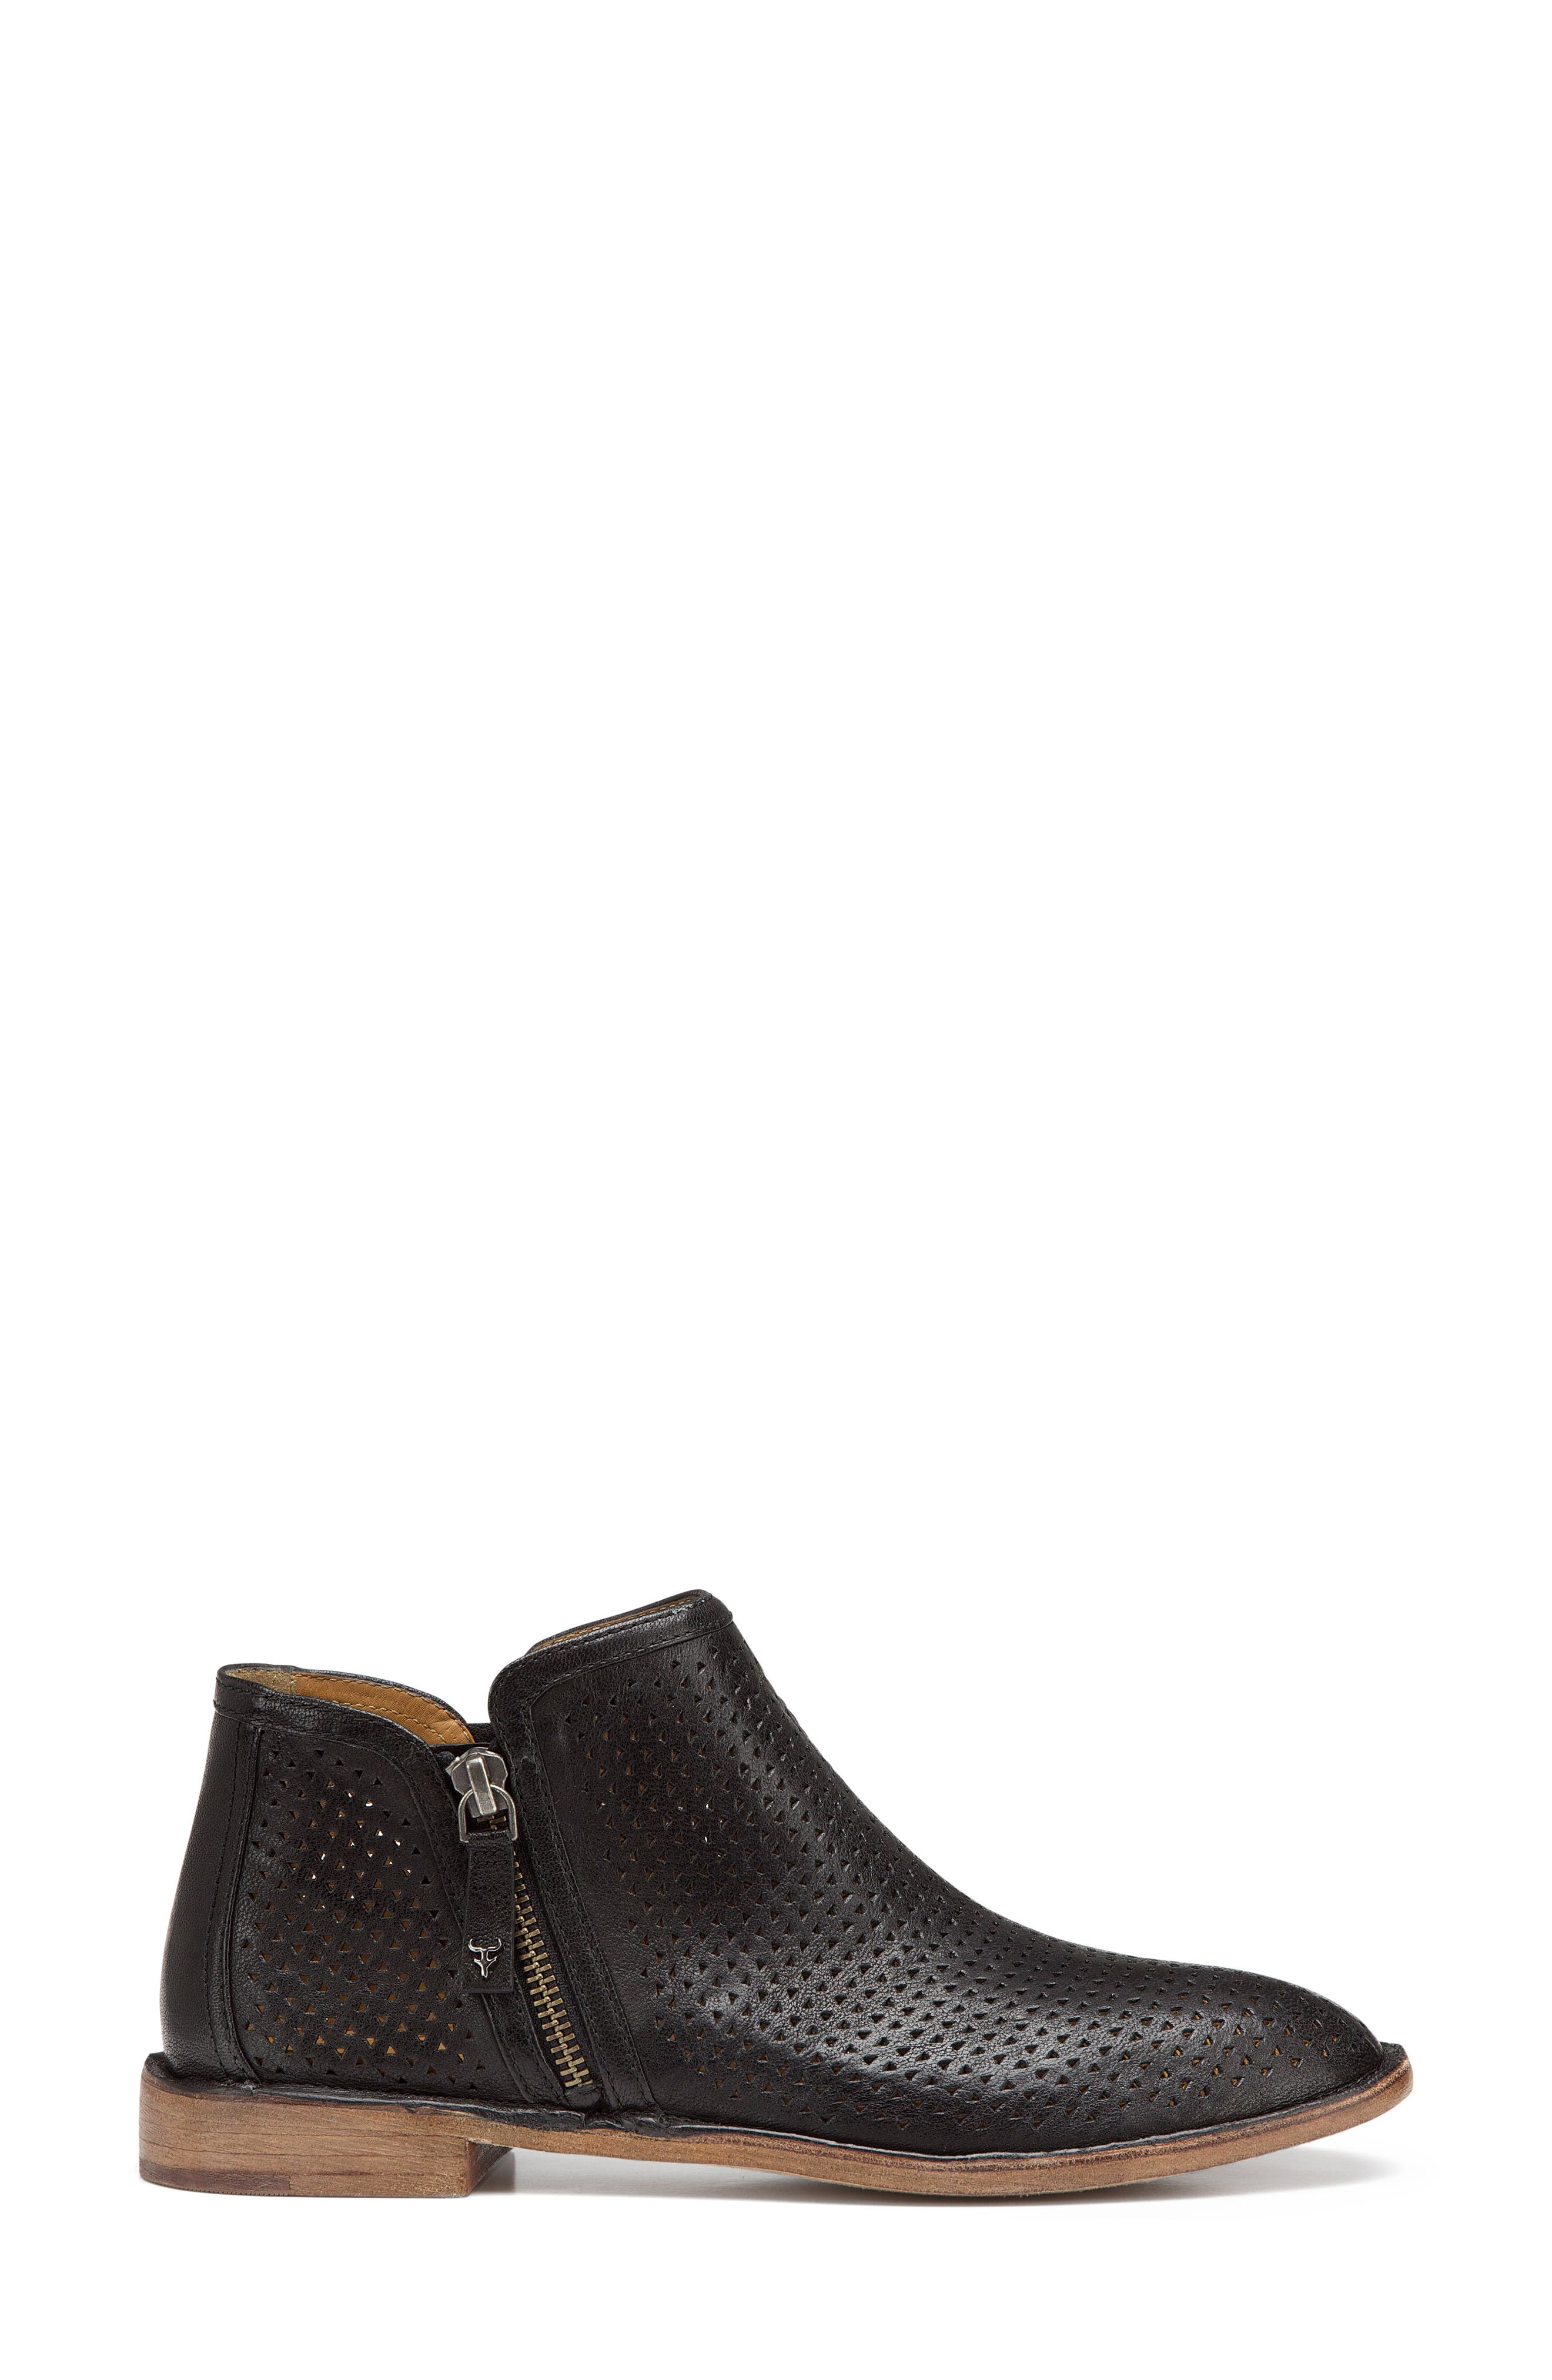 TRASK, Addison Low Perforated Bootie, Alternate thumbnail 3, color, 001